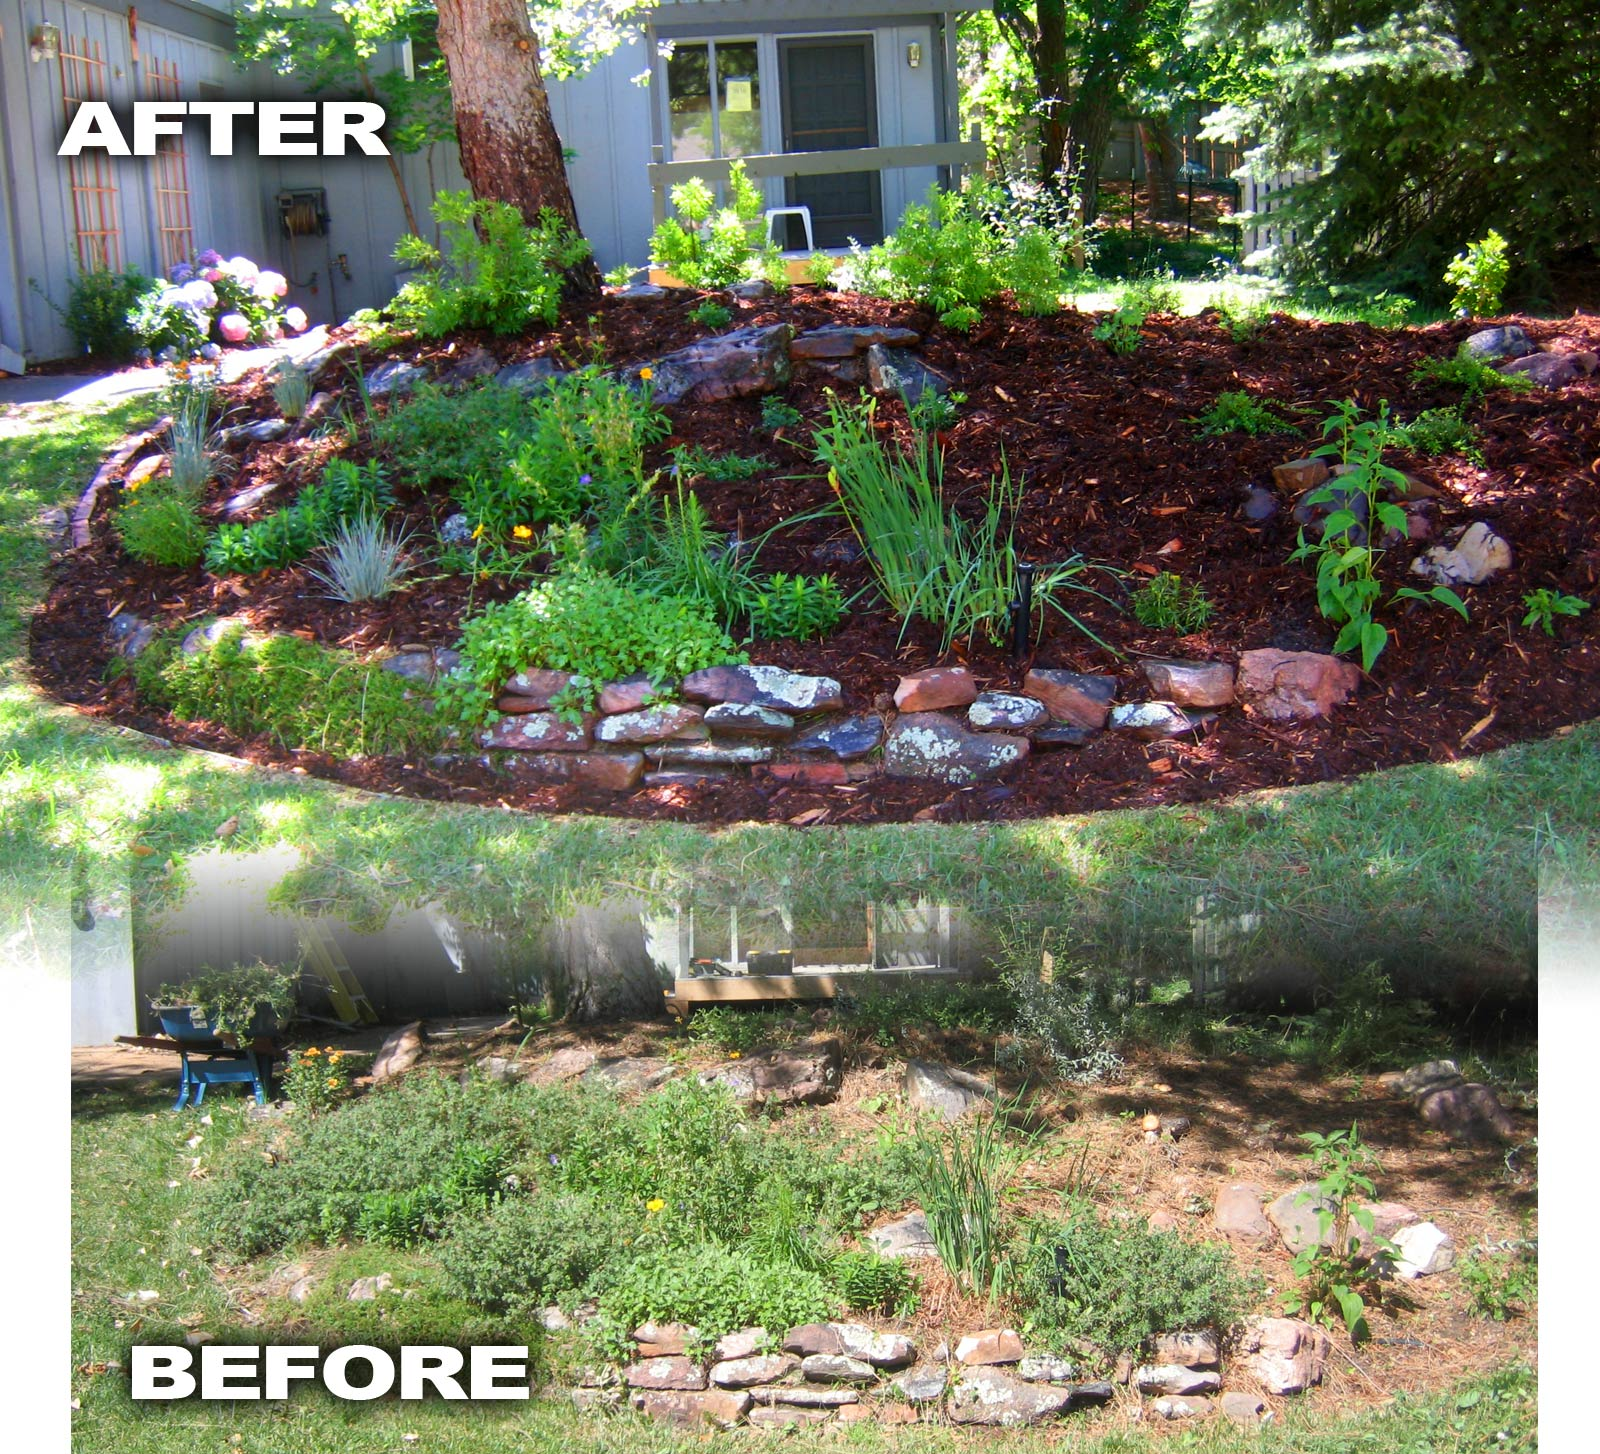 Before and after photos glacier view landscape and for Garden design ideas before and after